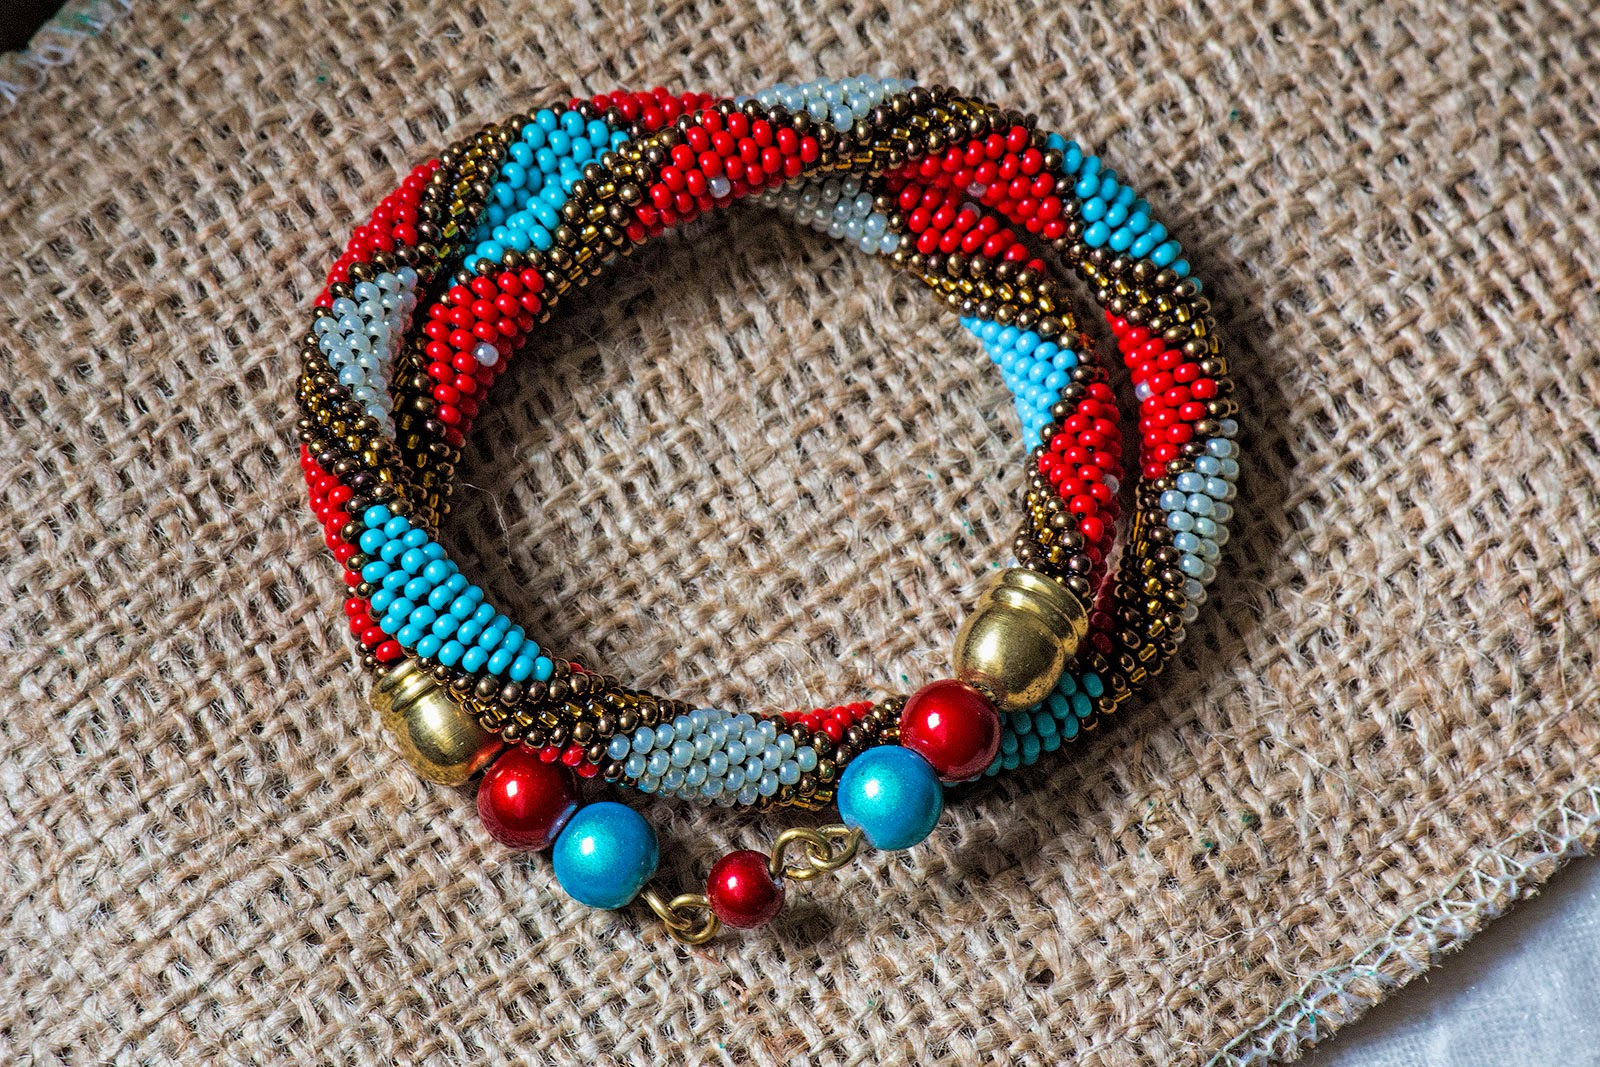 etsy shop beads crochet crocheted rope handmade handcrafted jewellery bracelet jewelry beadwork red blue beige gold japanese seed beads czech fashion chic